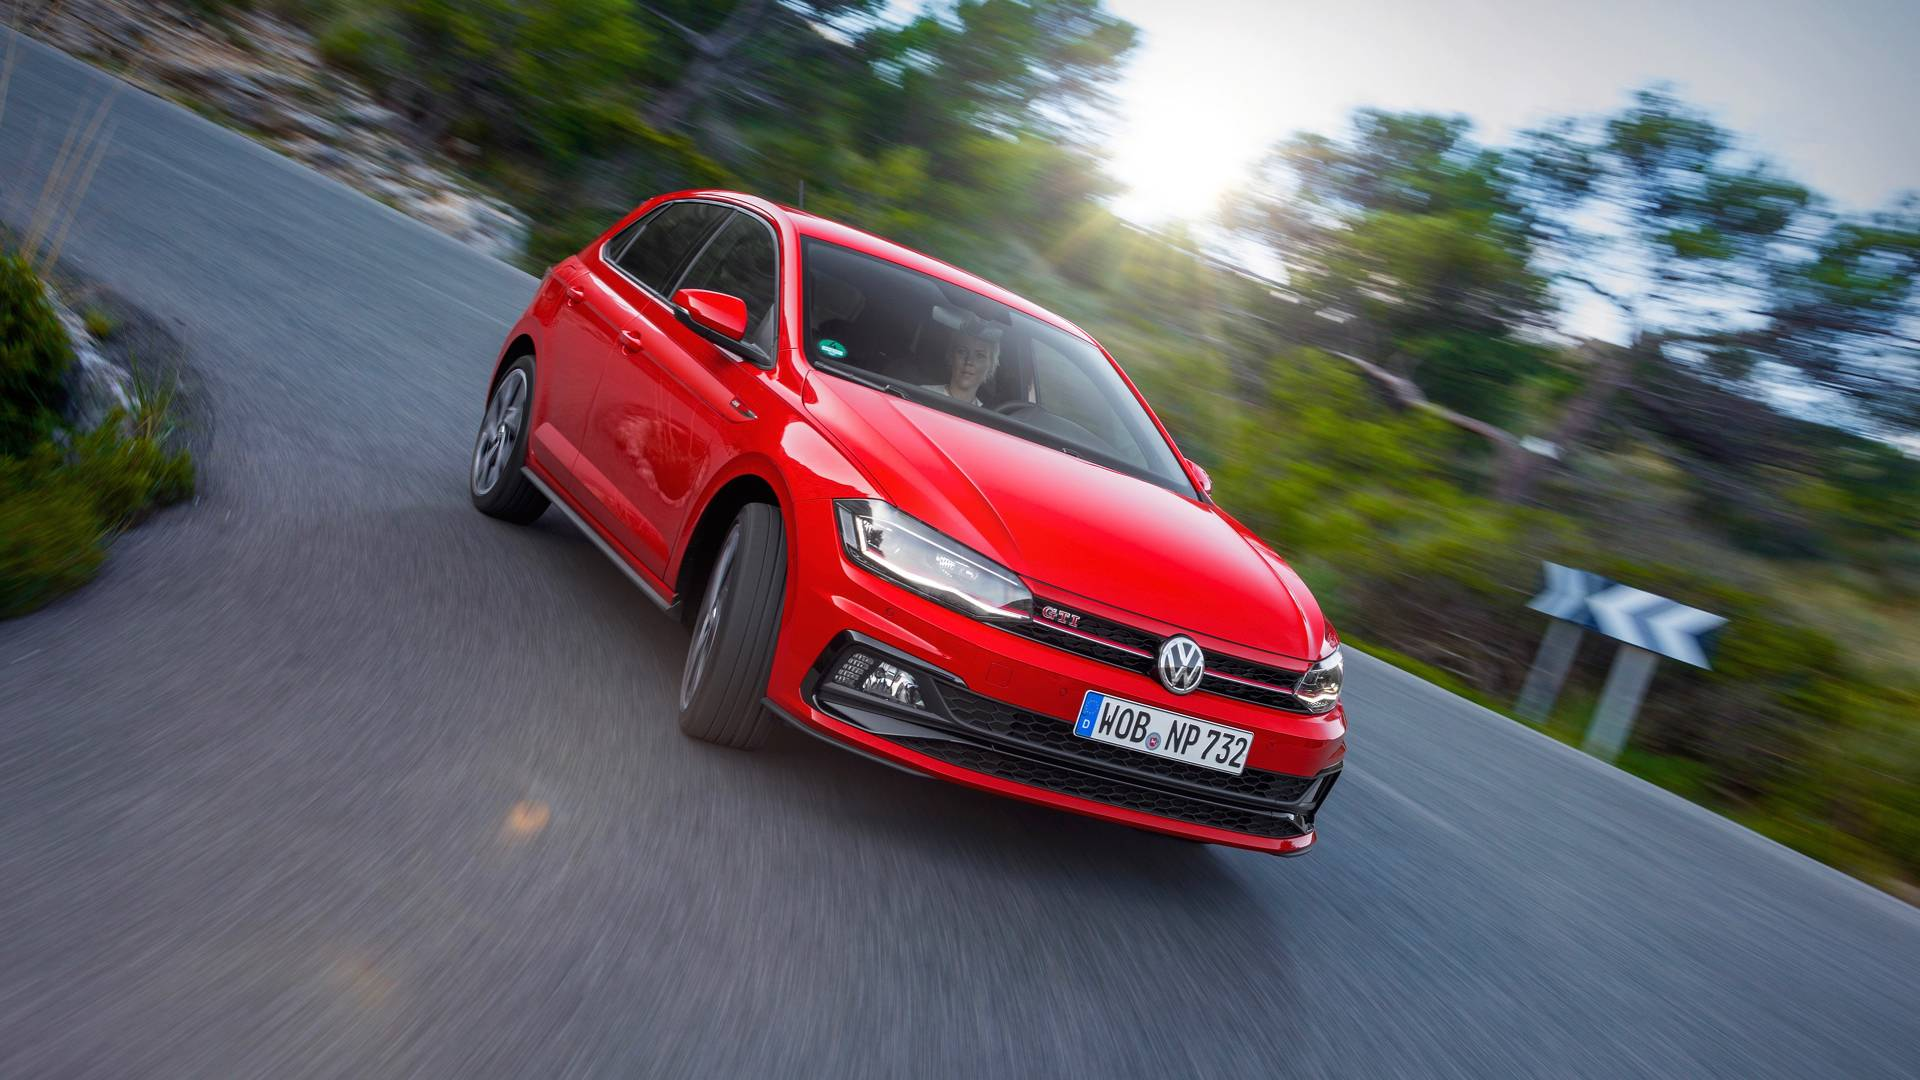 This Is What It S Like To Drive The New Vw Polo Gti At Night